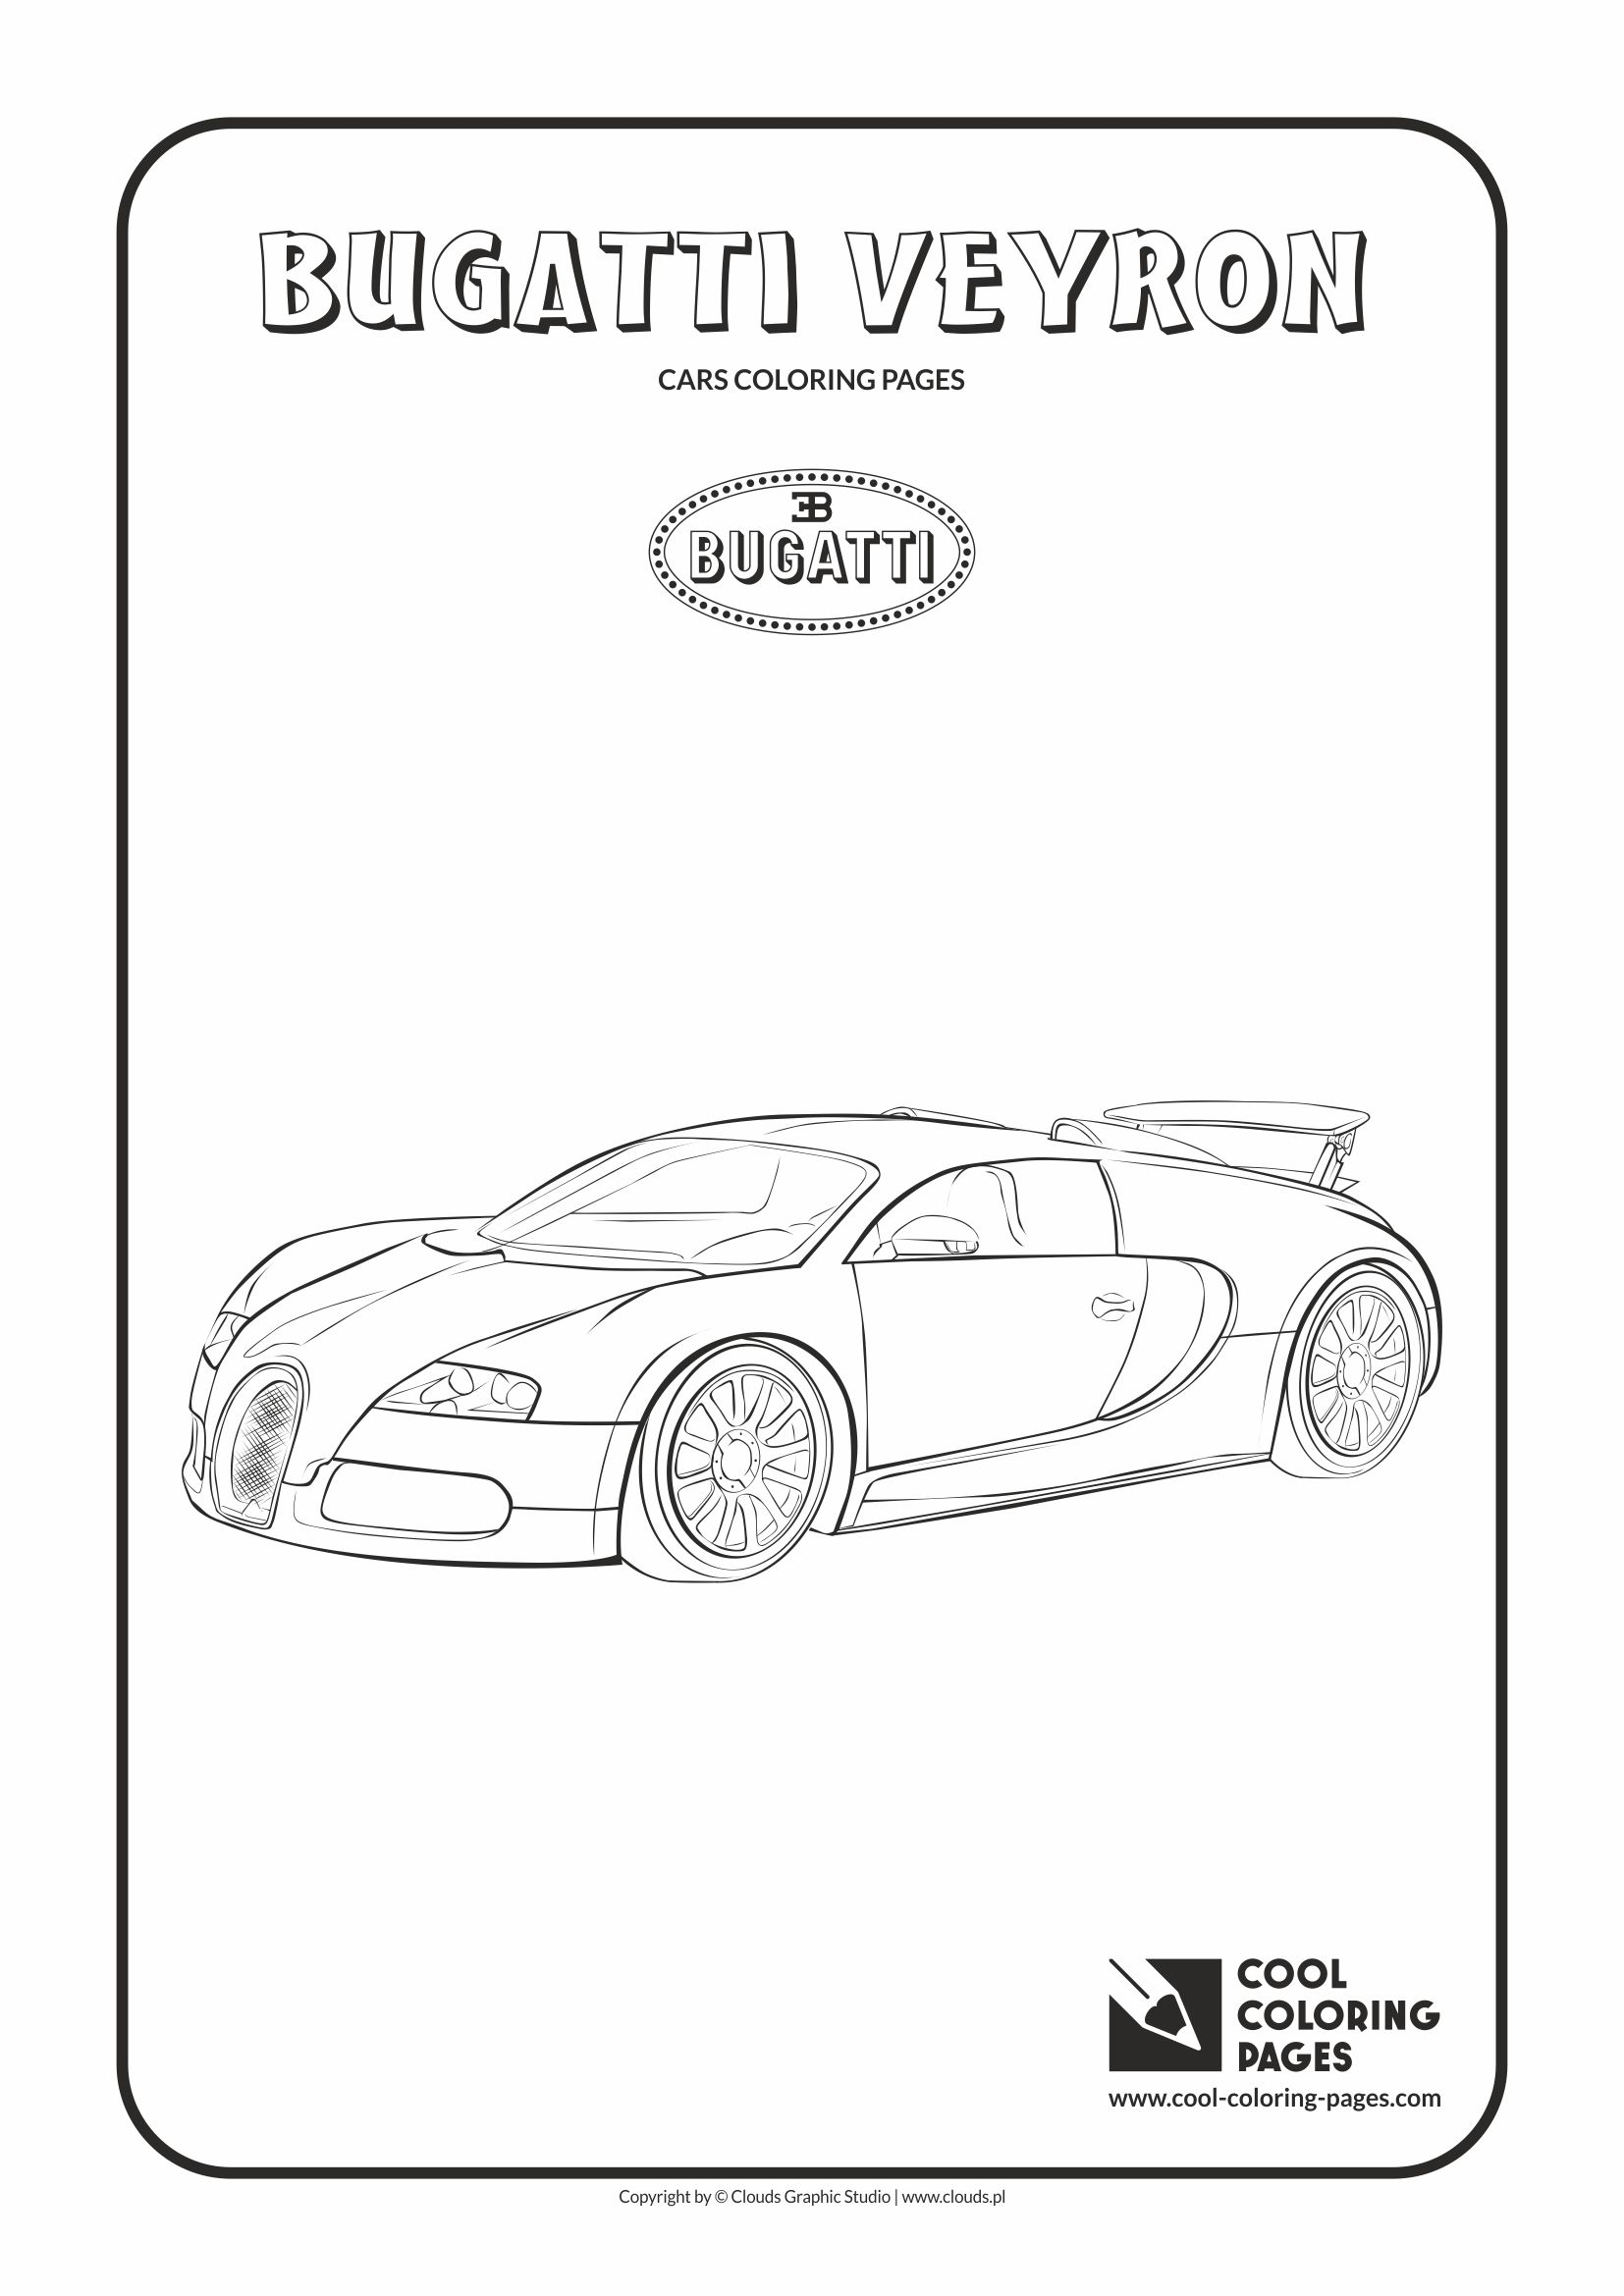 Cool Coloring Pages - Vehicles / Bugatti Veyron / Coloring page with Aston Bugatti Veyron